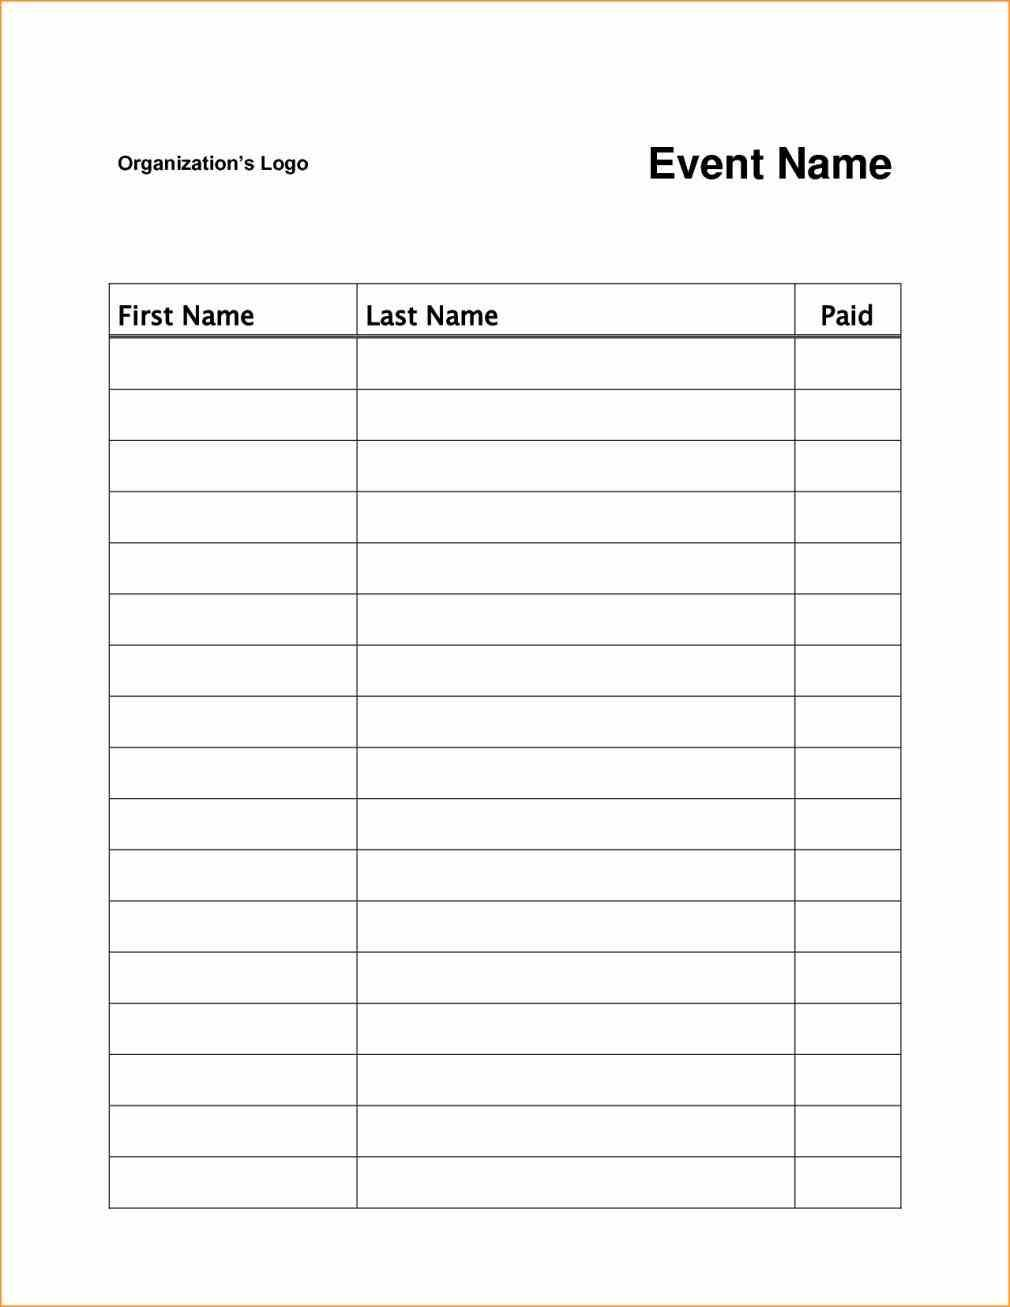 sign up chart template